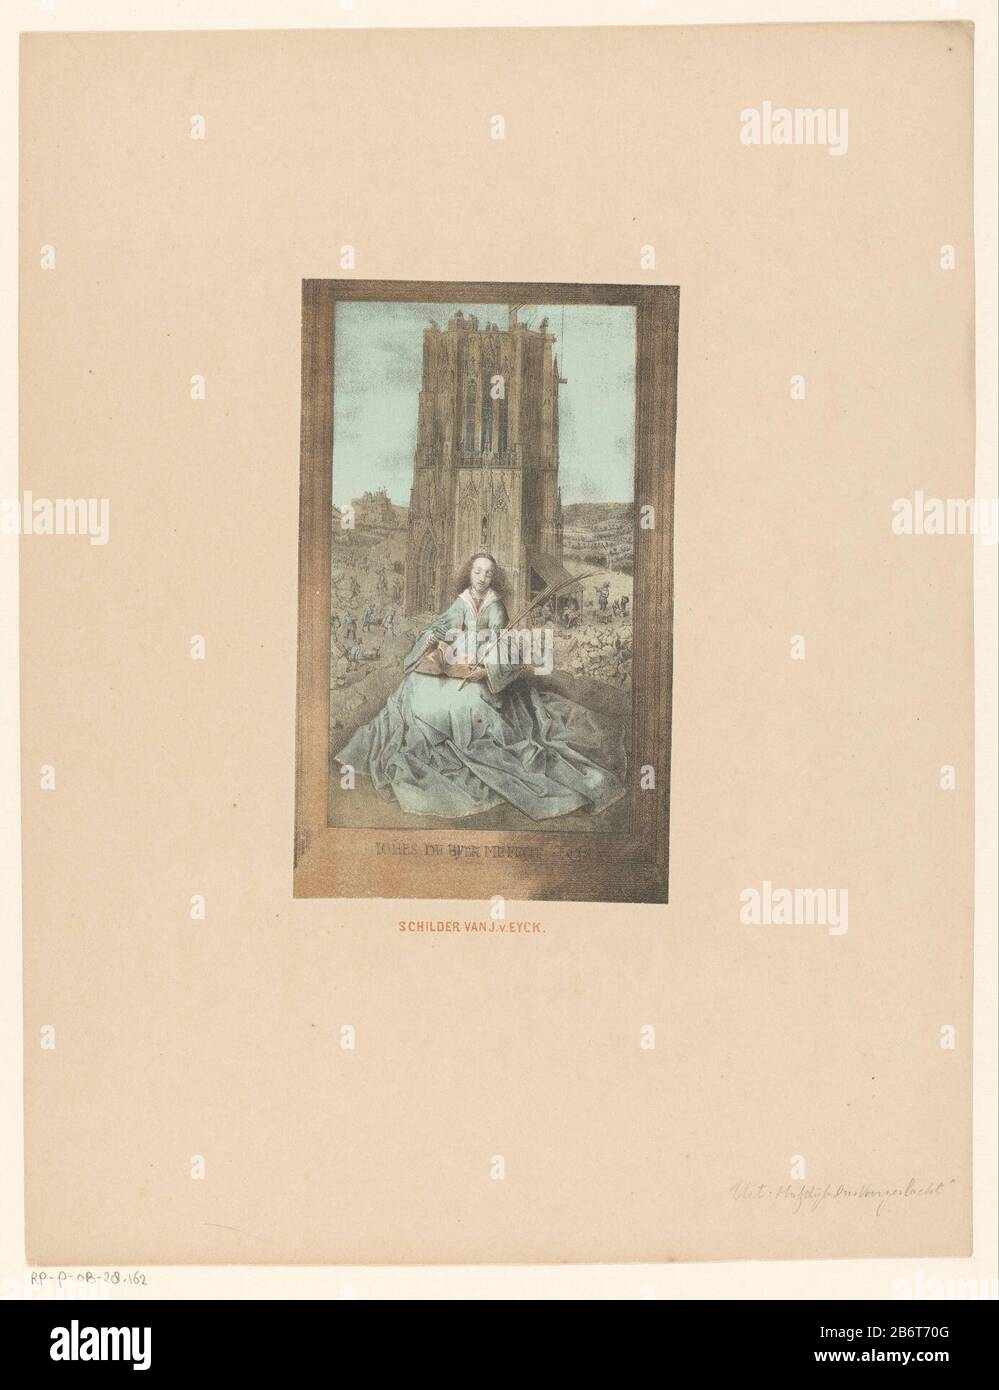 Saint Barbara is the tower Where: in it by her father locked up. In her hands she has a book and a palmtak. Manufacturer : printmaker: anonymous publisher: AC Kruseman Date: 1857 - 1864 Physical characteristics: color lithograph material: paper Technique: color lithograph (process) Dimensions: sheet: H 390 mm × W 300 mmToelichtingNaar a painting by Jan van Eyck in 1437 in the collection of the Royal Museum of Fine Arts Antwerpen. Subject: the virgin martyr Barbara; possible attributes: book, cannon (ball), crown, cross, chalice with wafer Dioscuros (her father), peacock feather, sword, torches Stock Photo